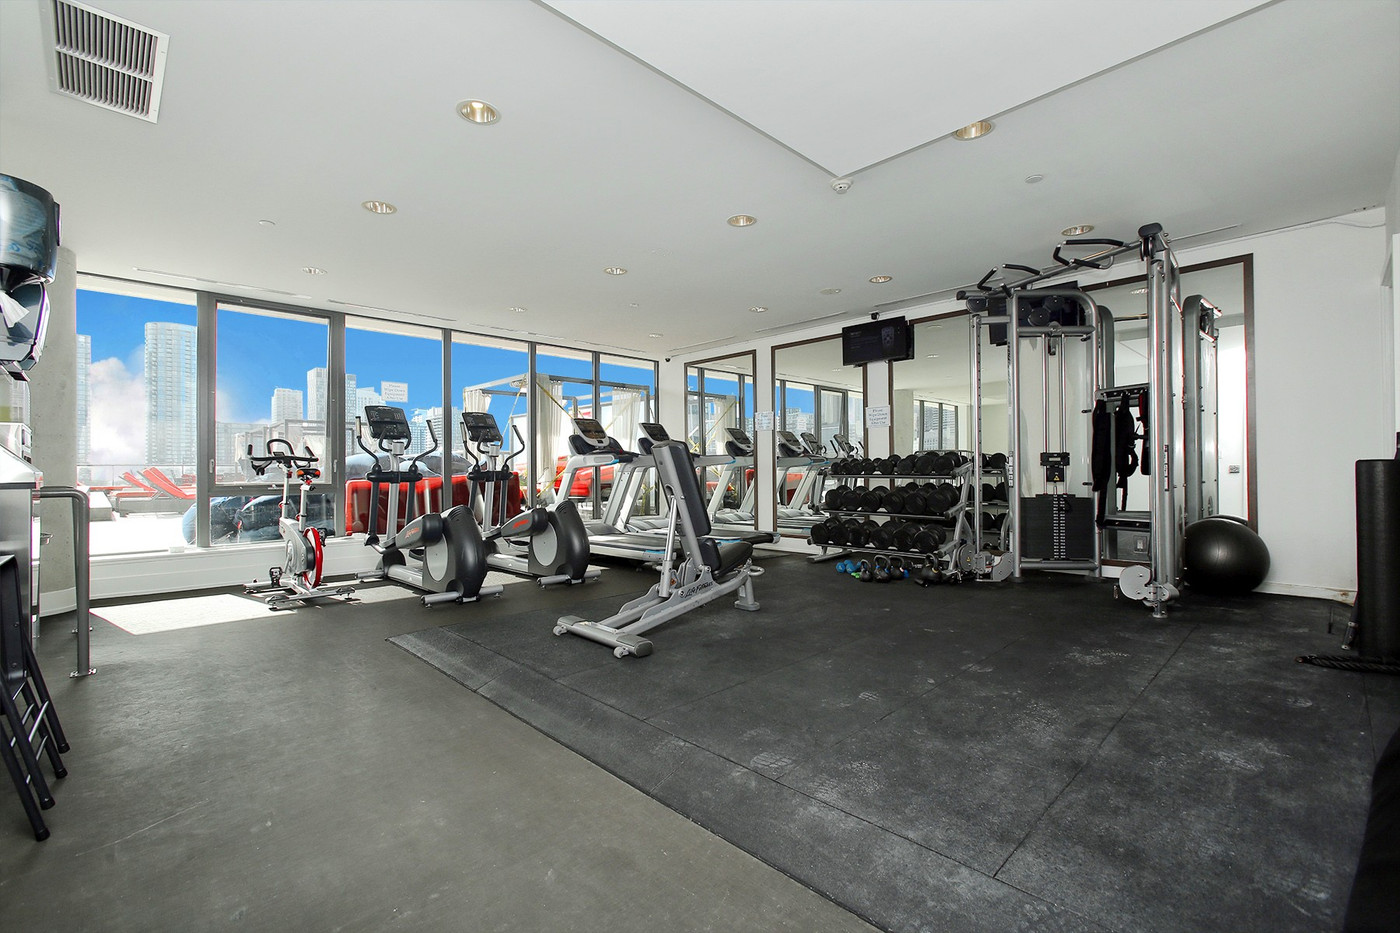 Exercise room (3).jpg